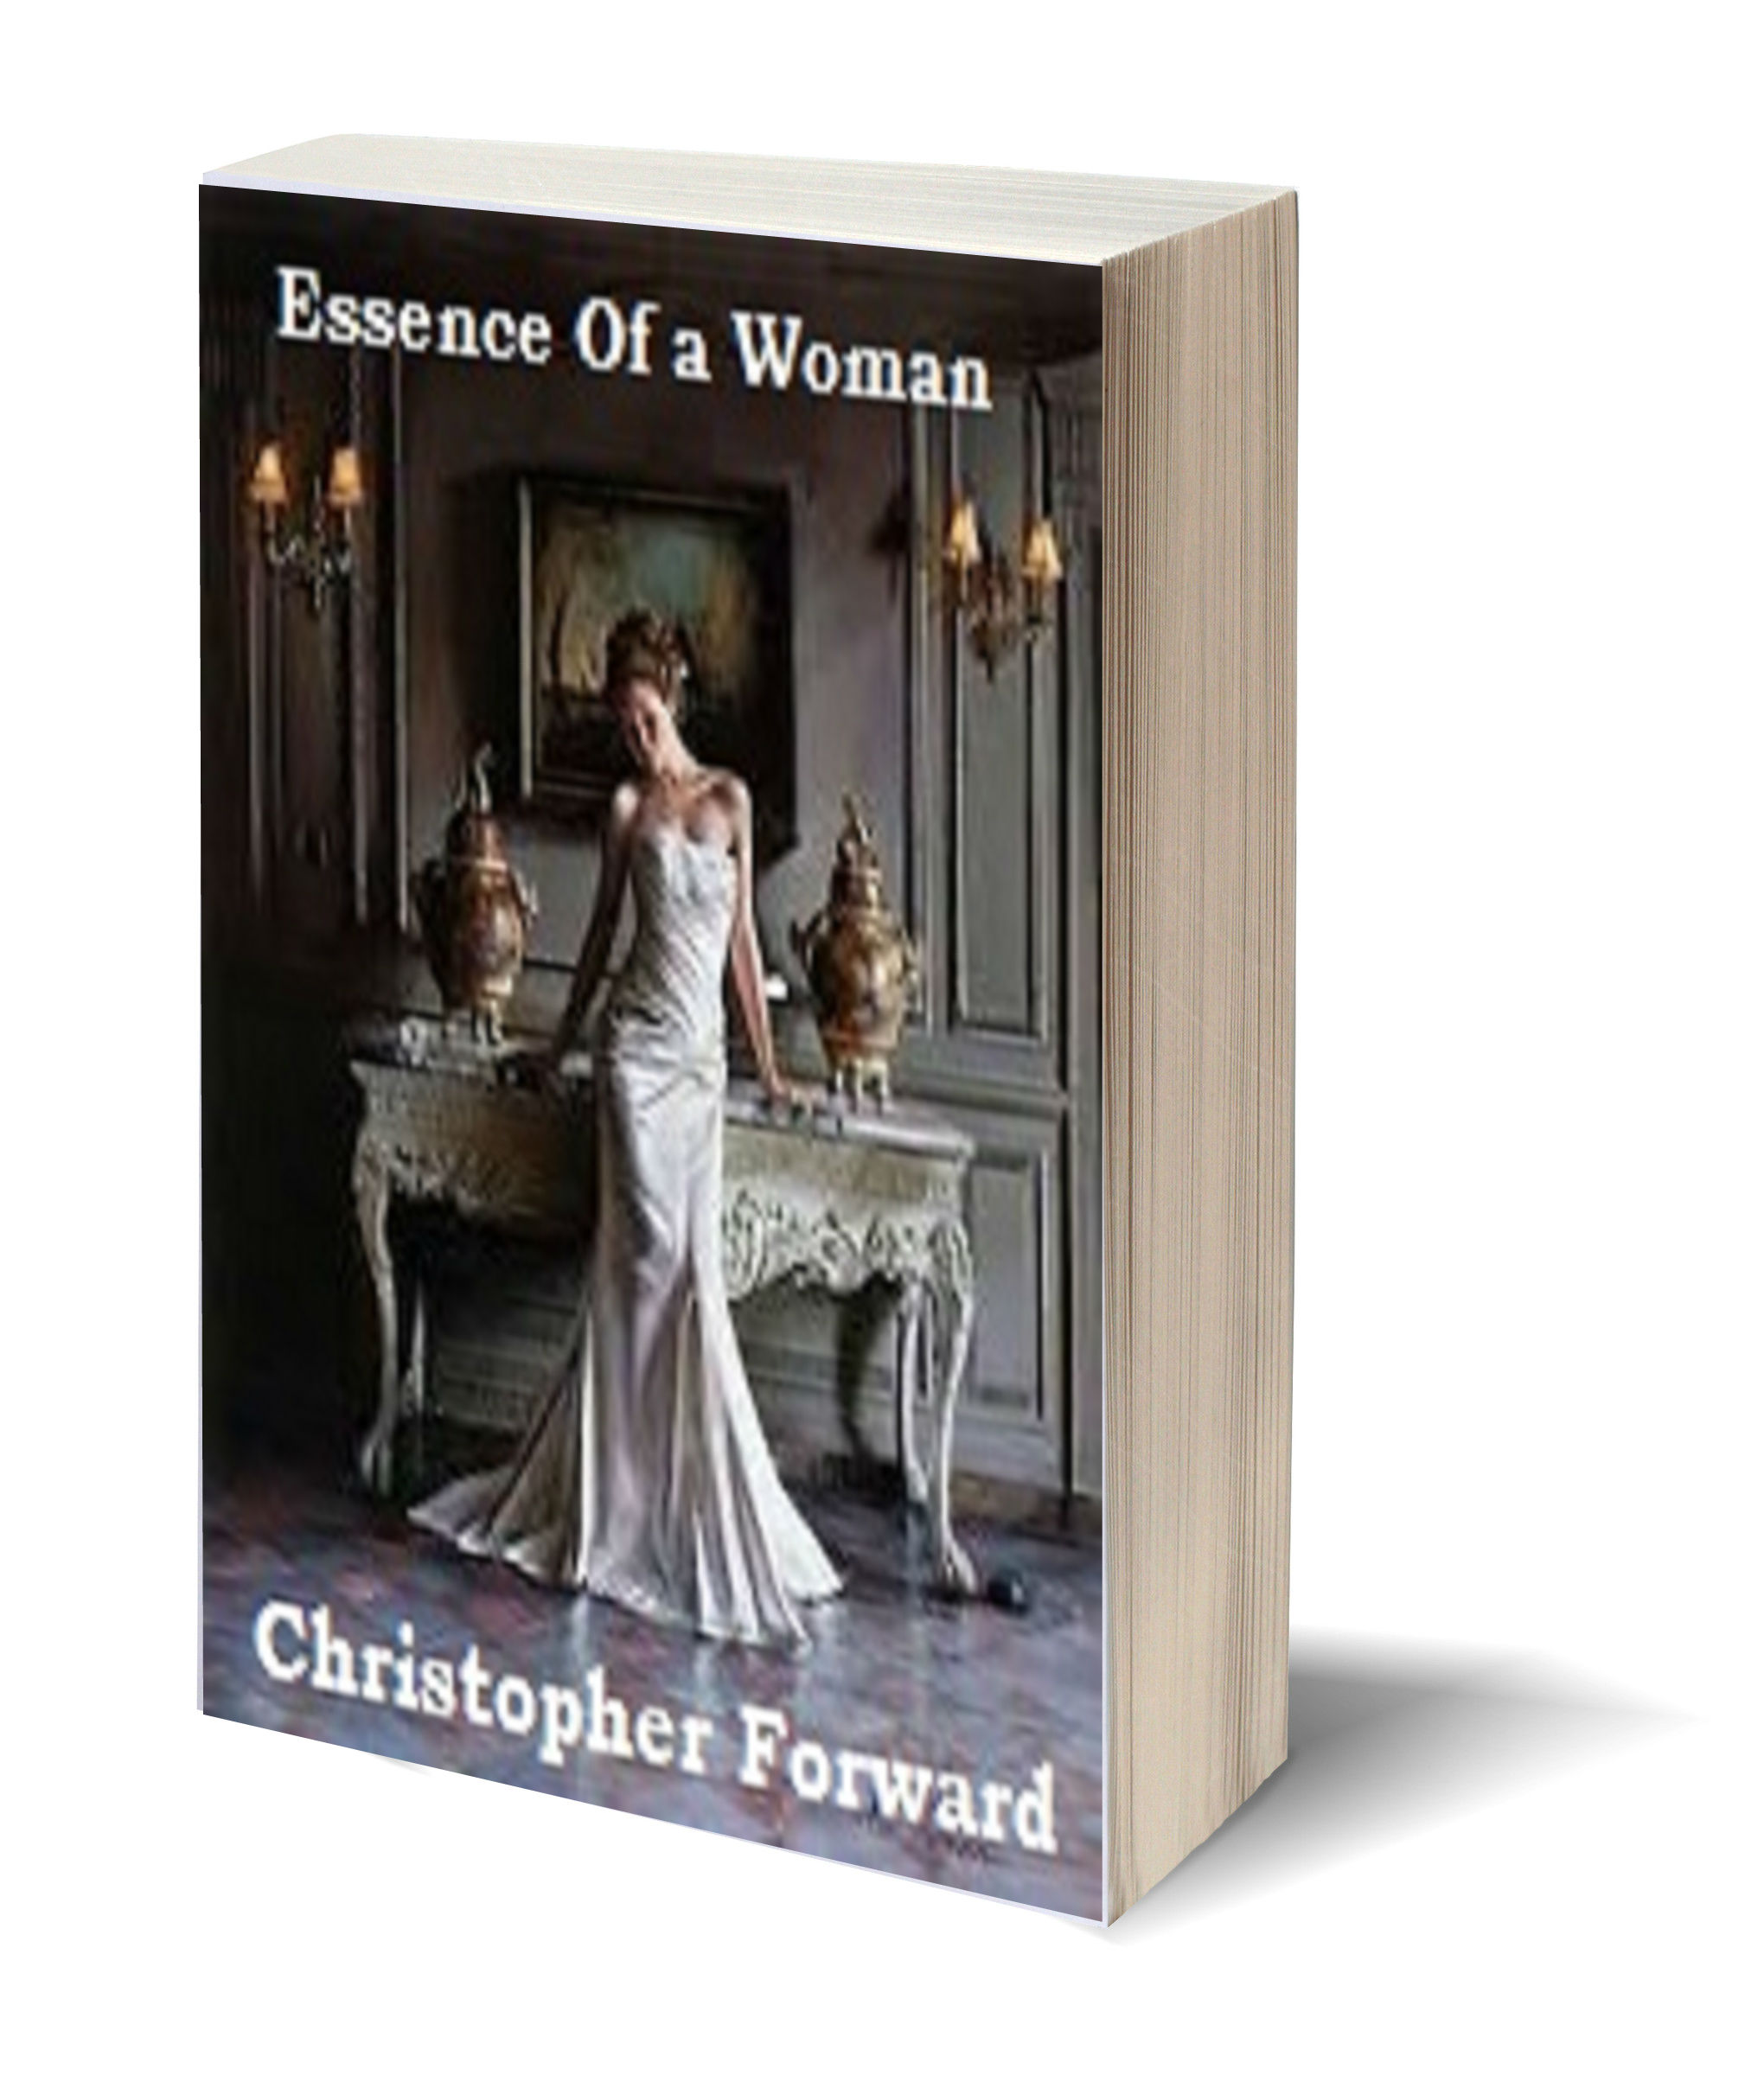 Essence Of a Woman 3D-Book-Template.jpg